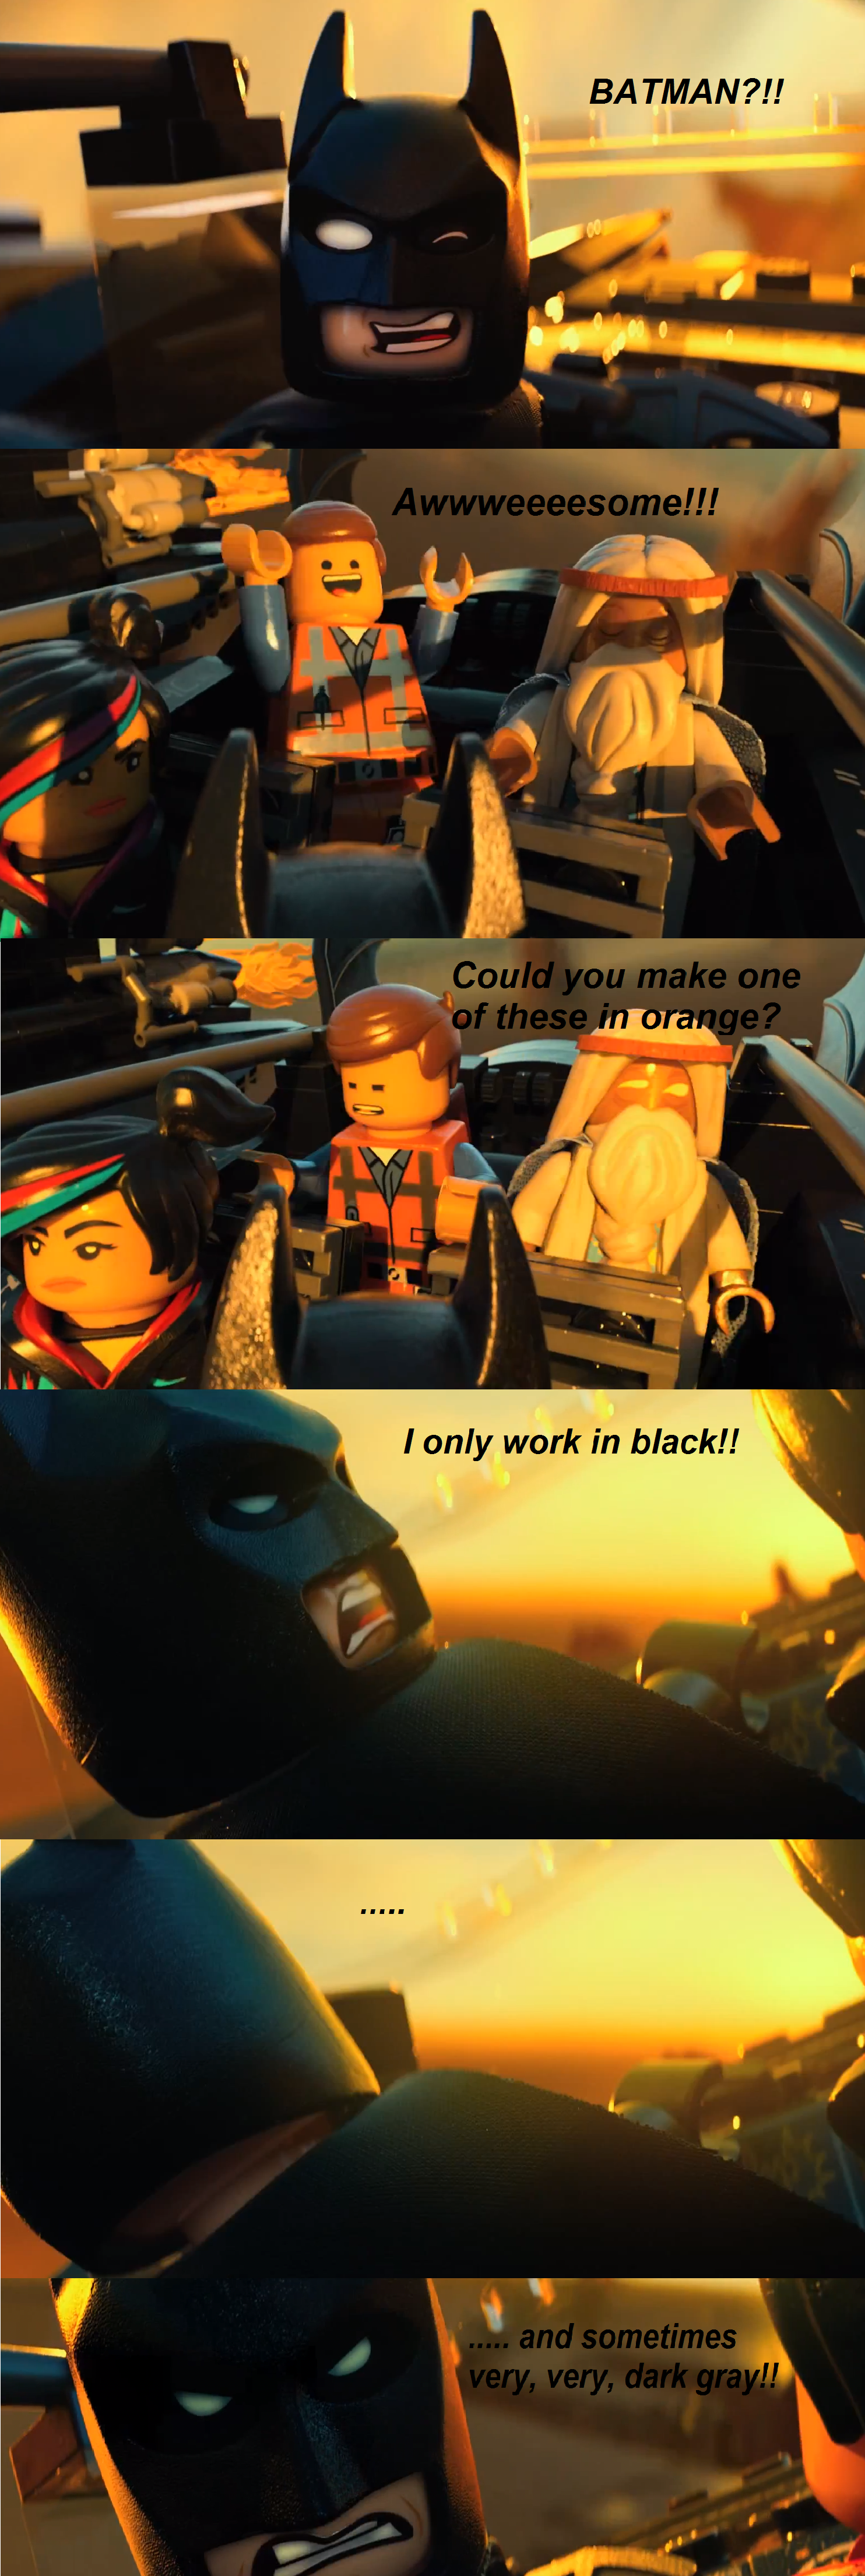 The Lego Movie. Can't wait for this movie. Go watch the trailer!.. Considering Lego works with DC and Marvel we might, just might, be able to see some very badass crossover. Even if in Lego form most of us can agree this would